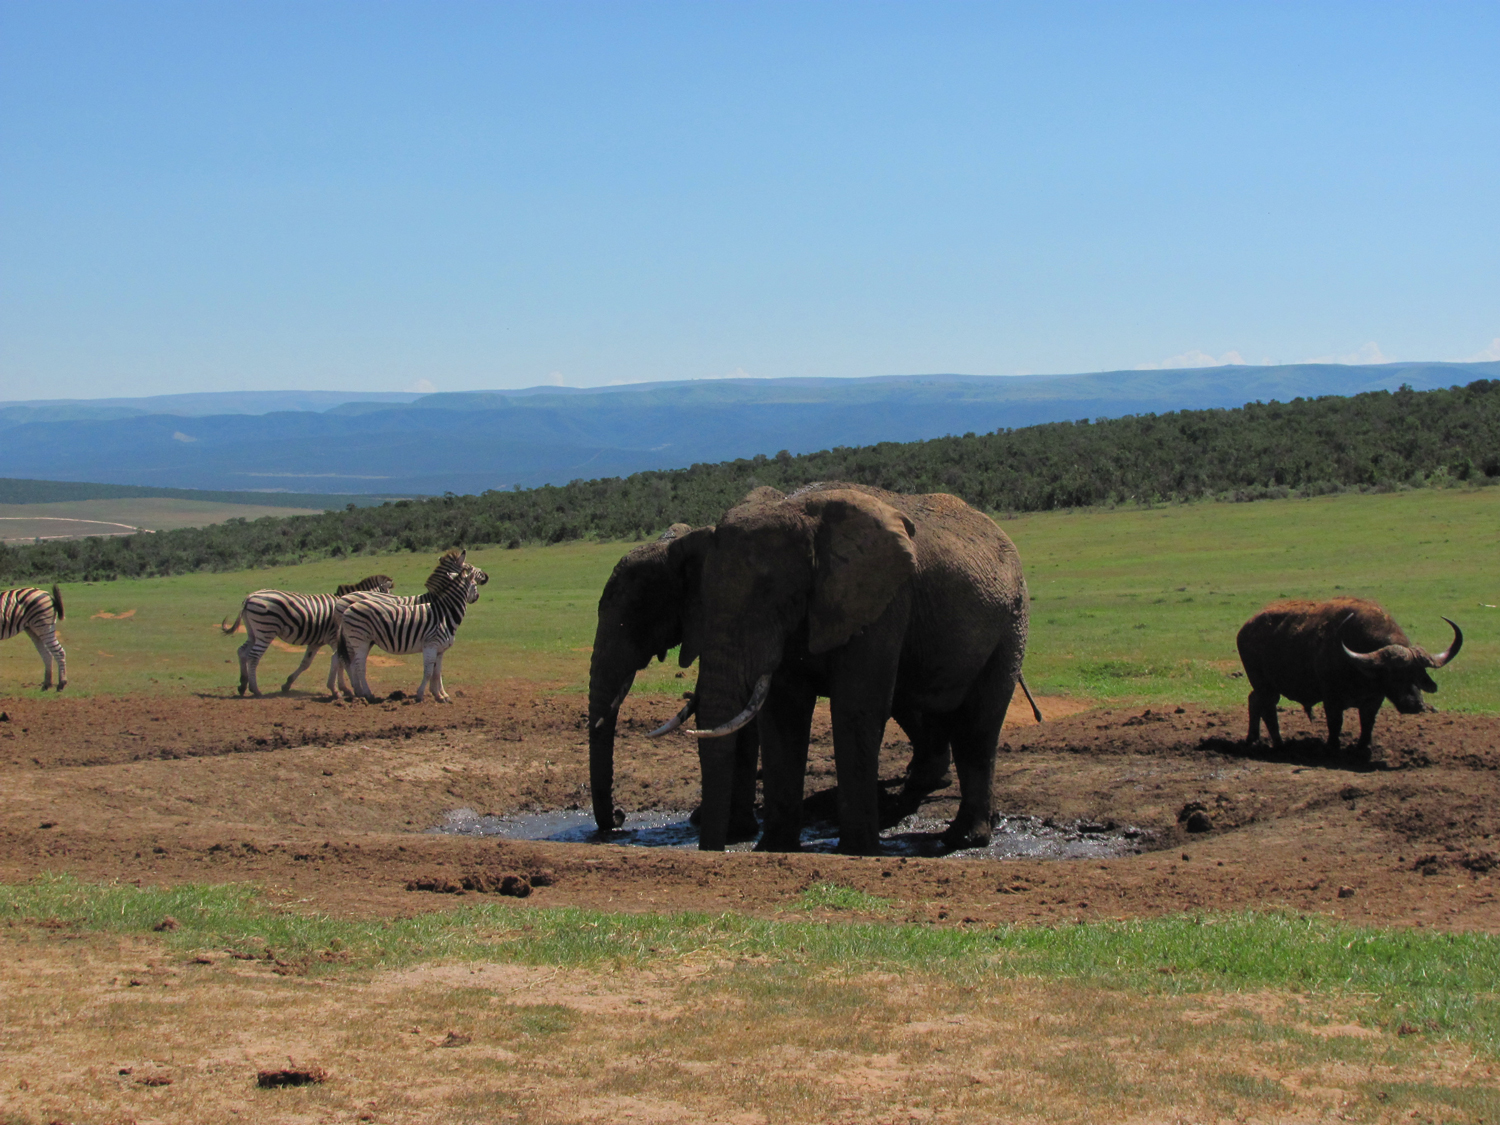 Addo-Elephant-National-Park-Exclusive-Tours-Elephants-Zebras-Waterhole